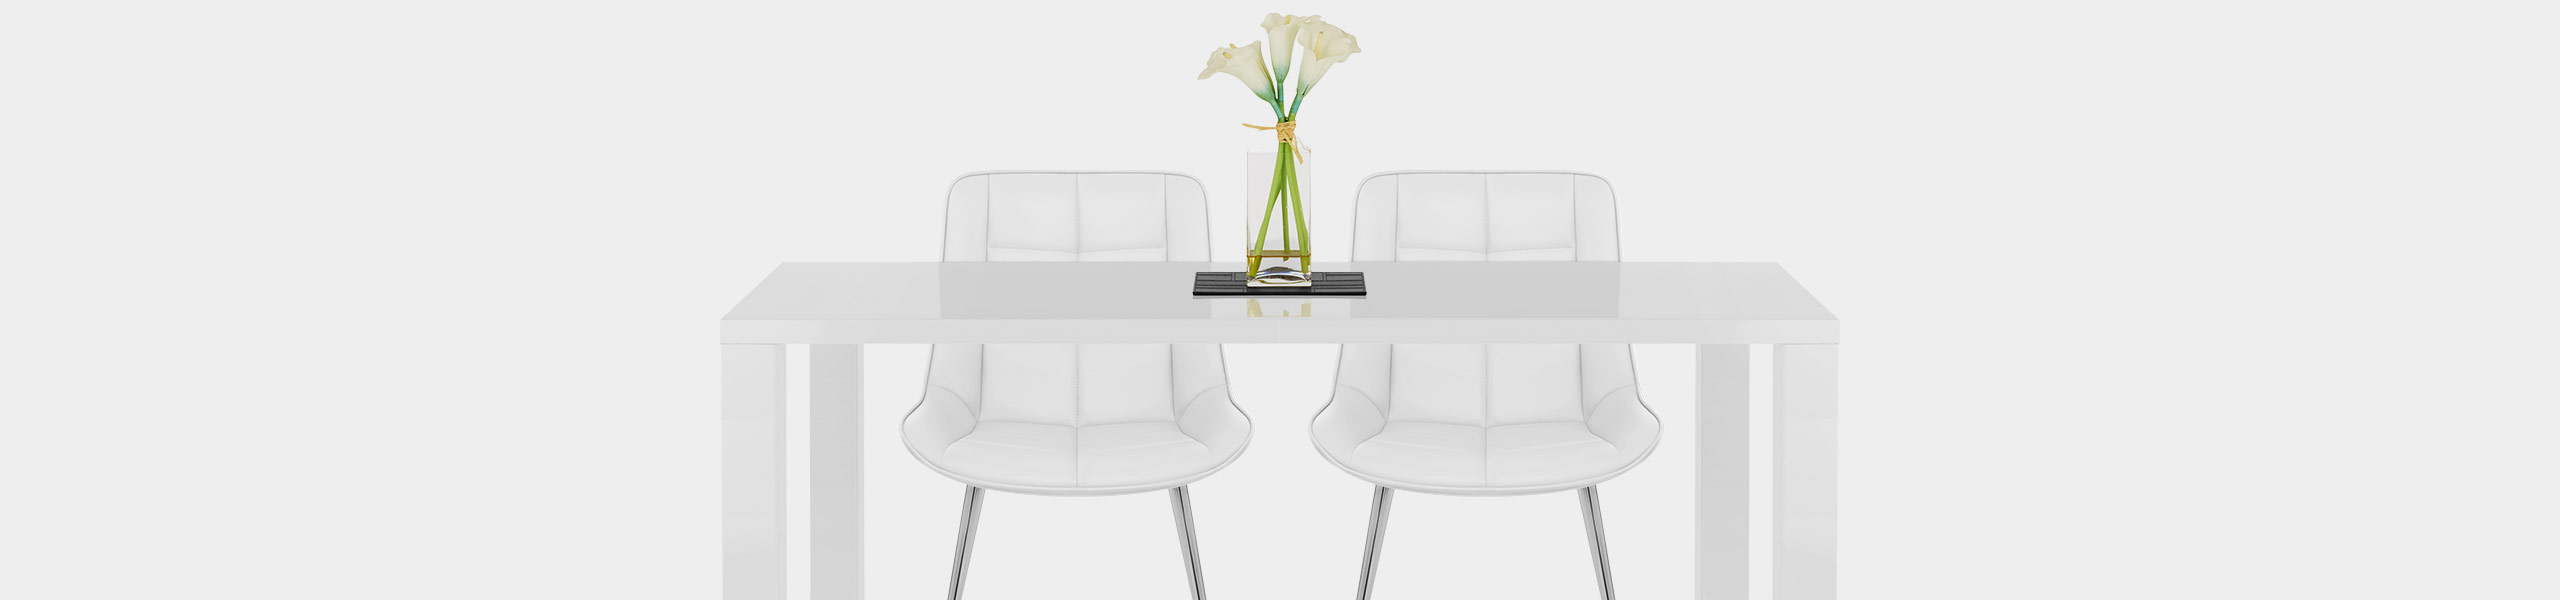 Milano Dining Chair White Video Banner